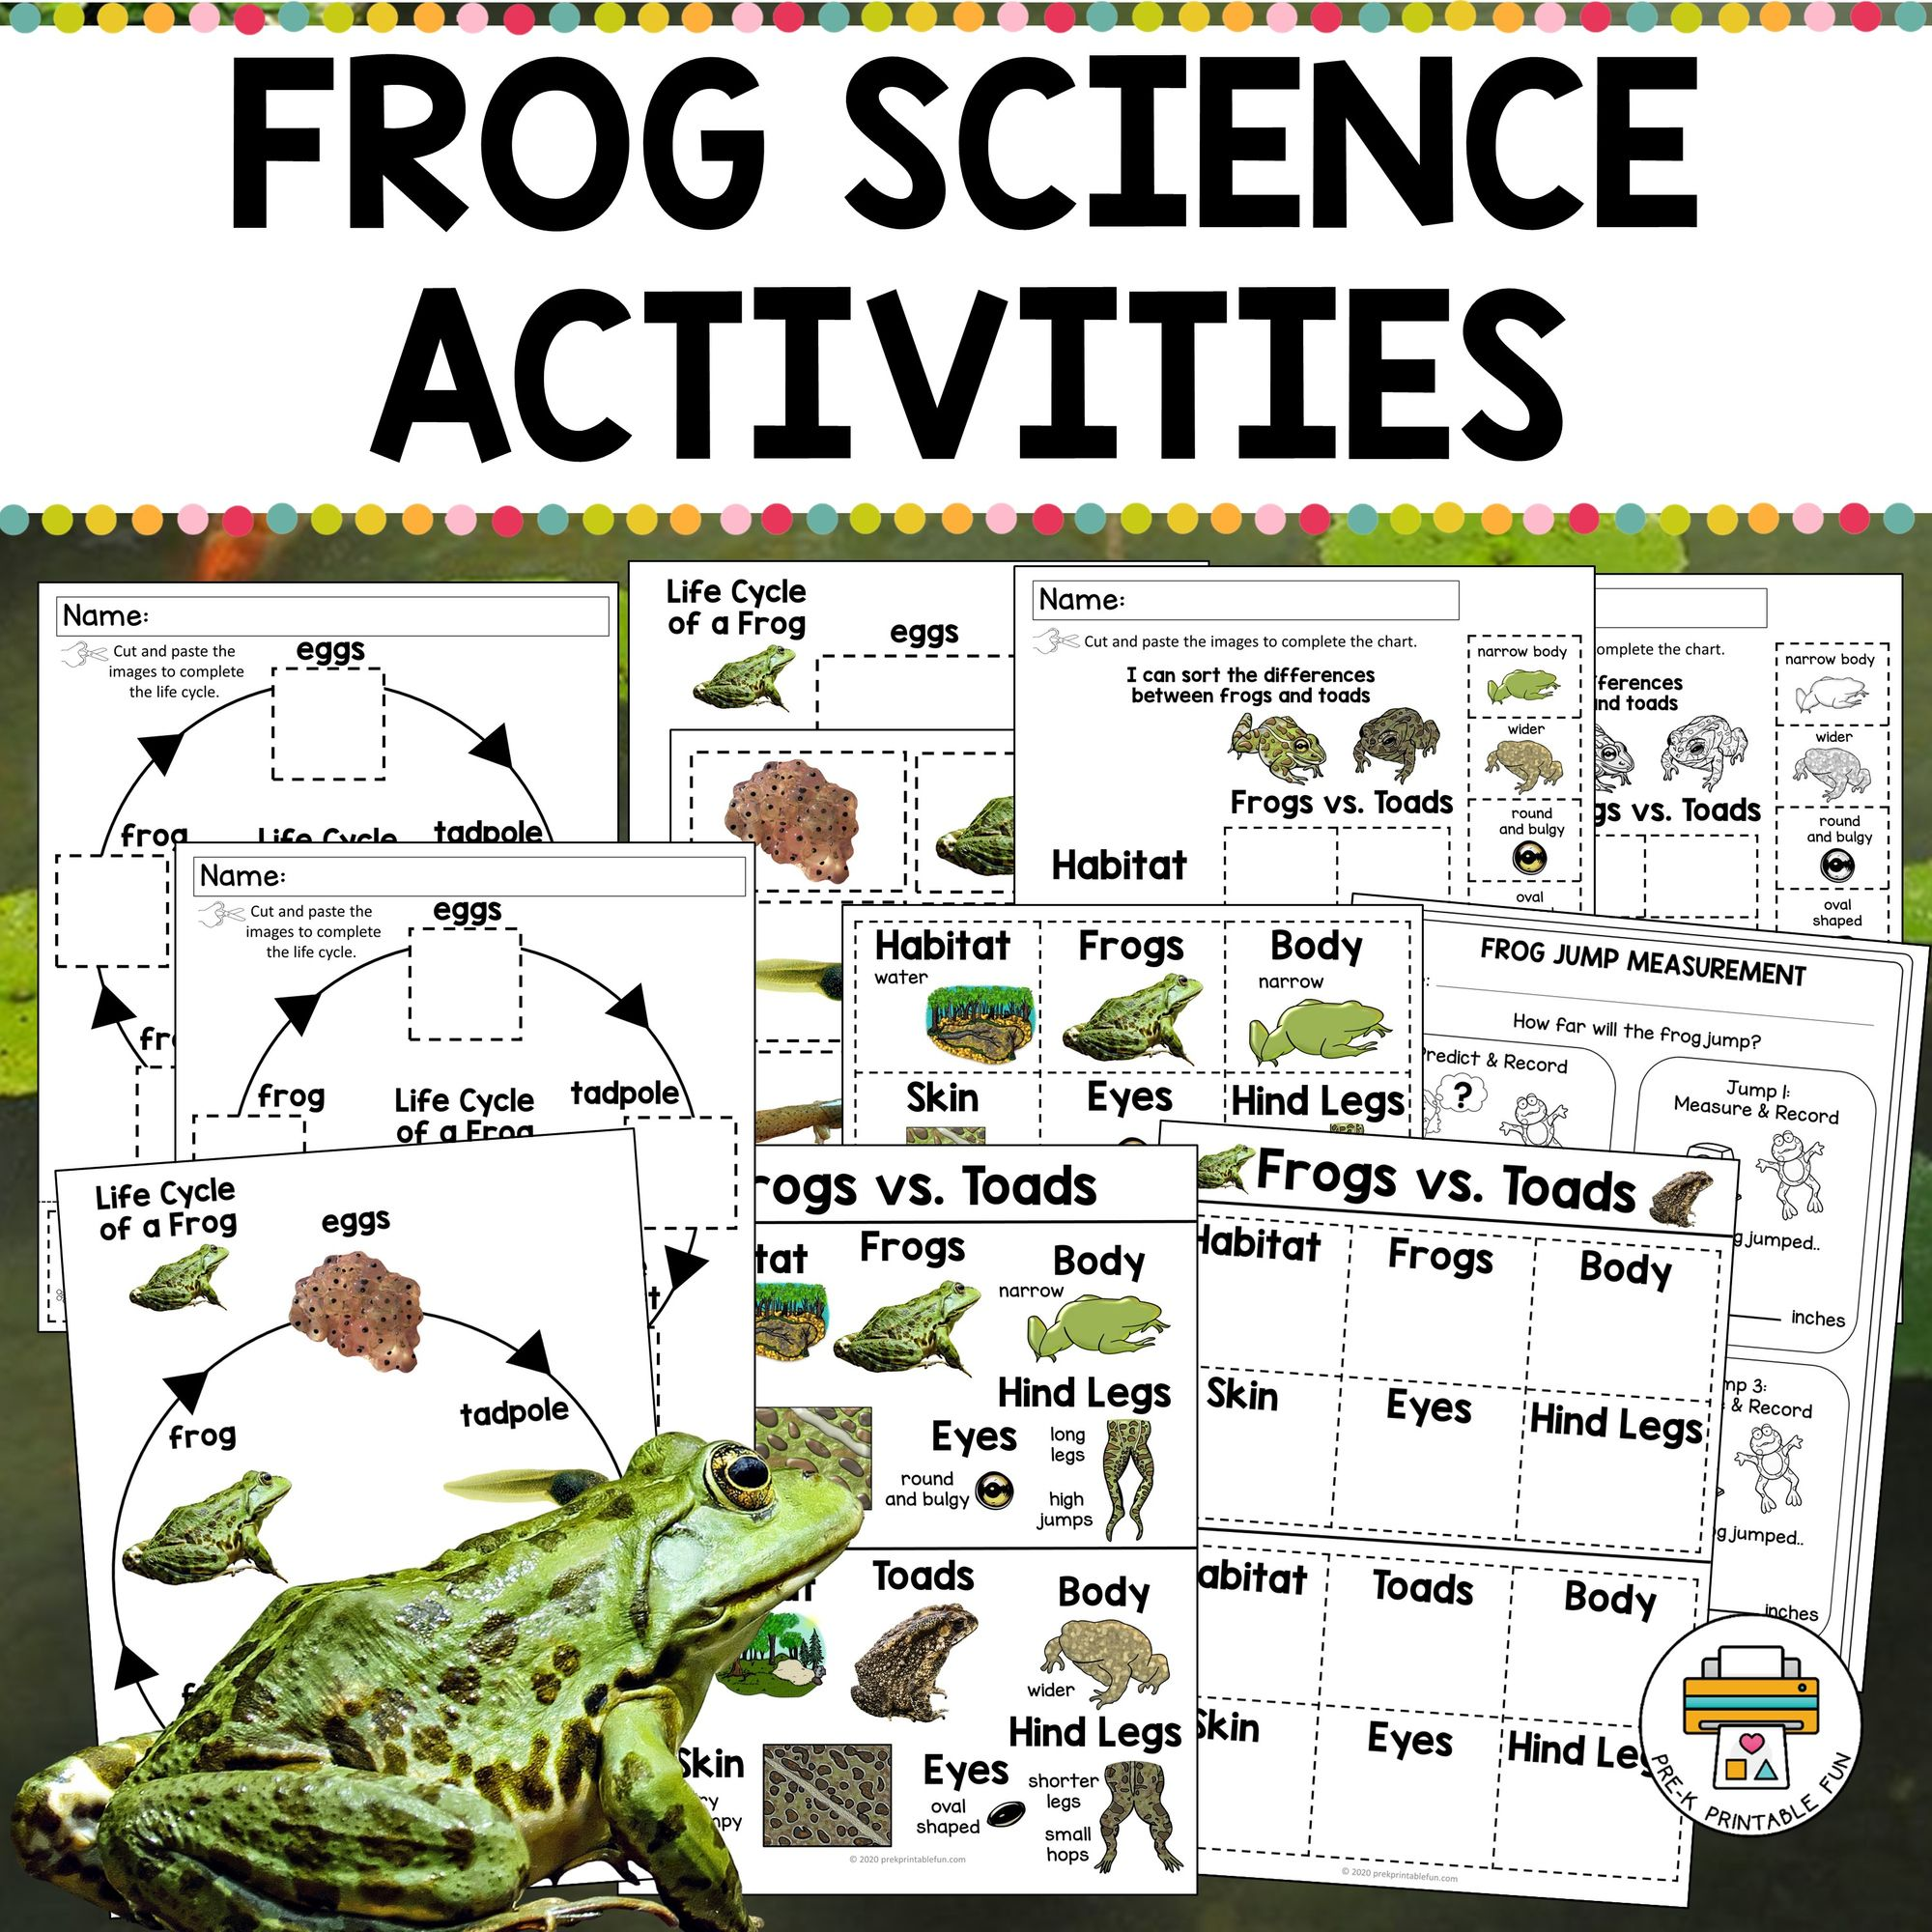 Check Out These Awesome Frog Science Activities For